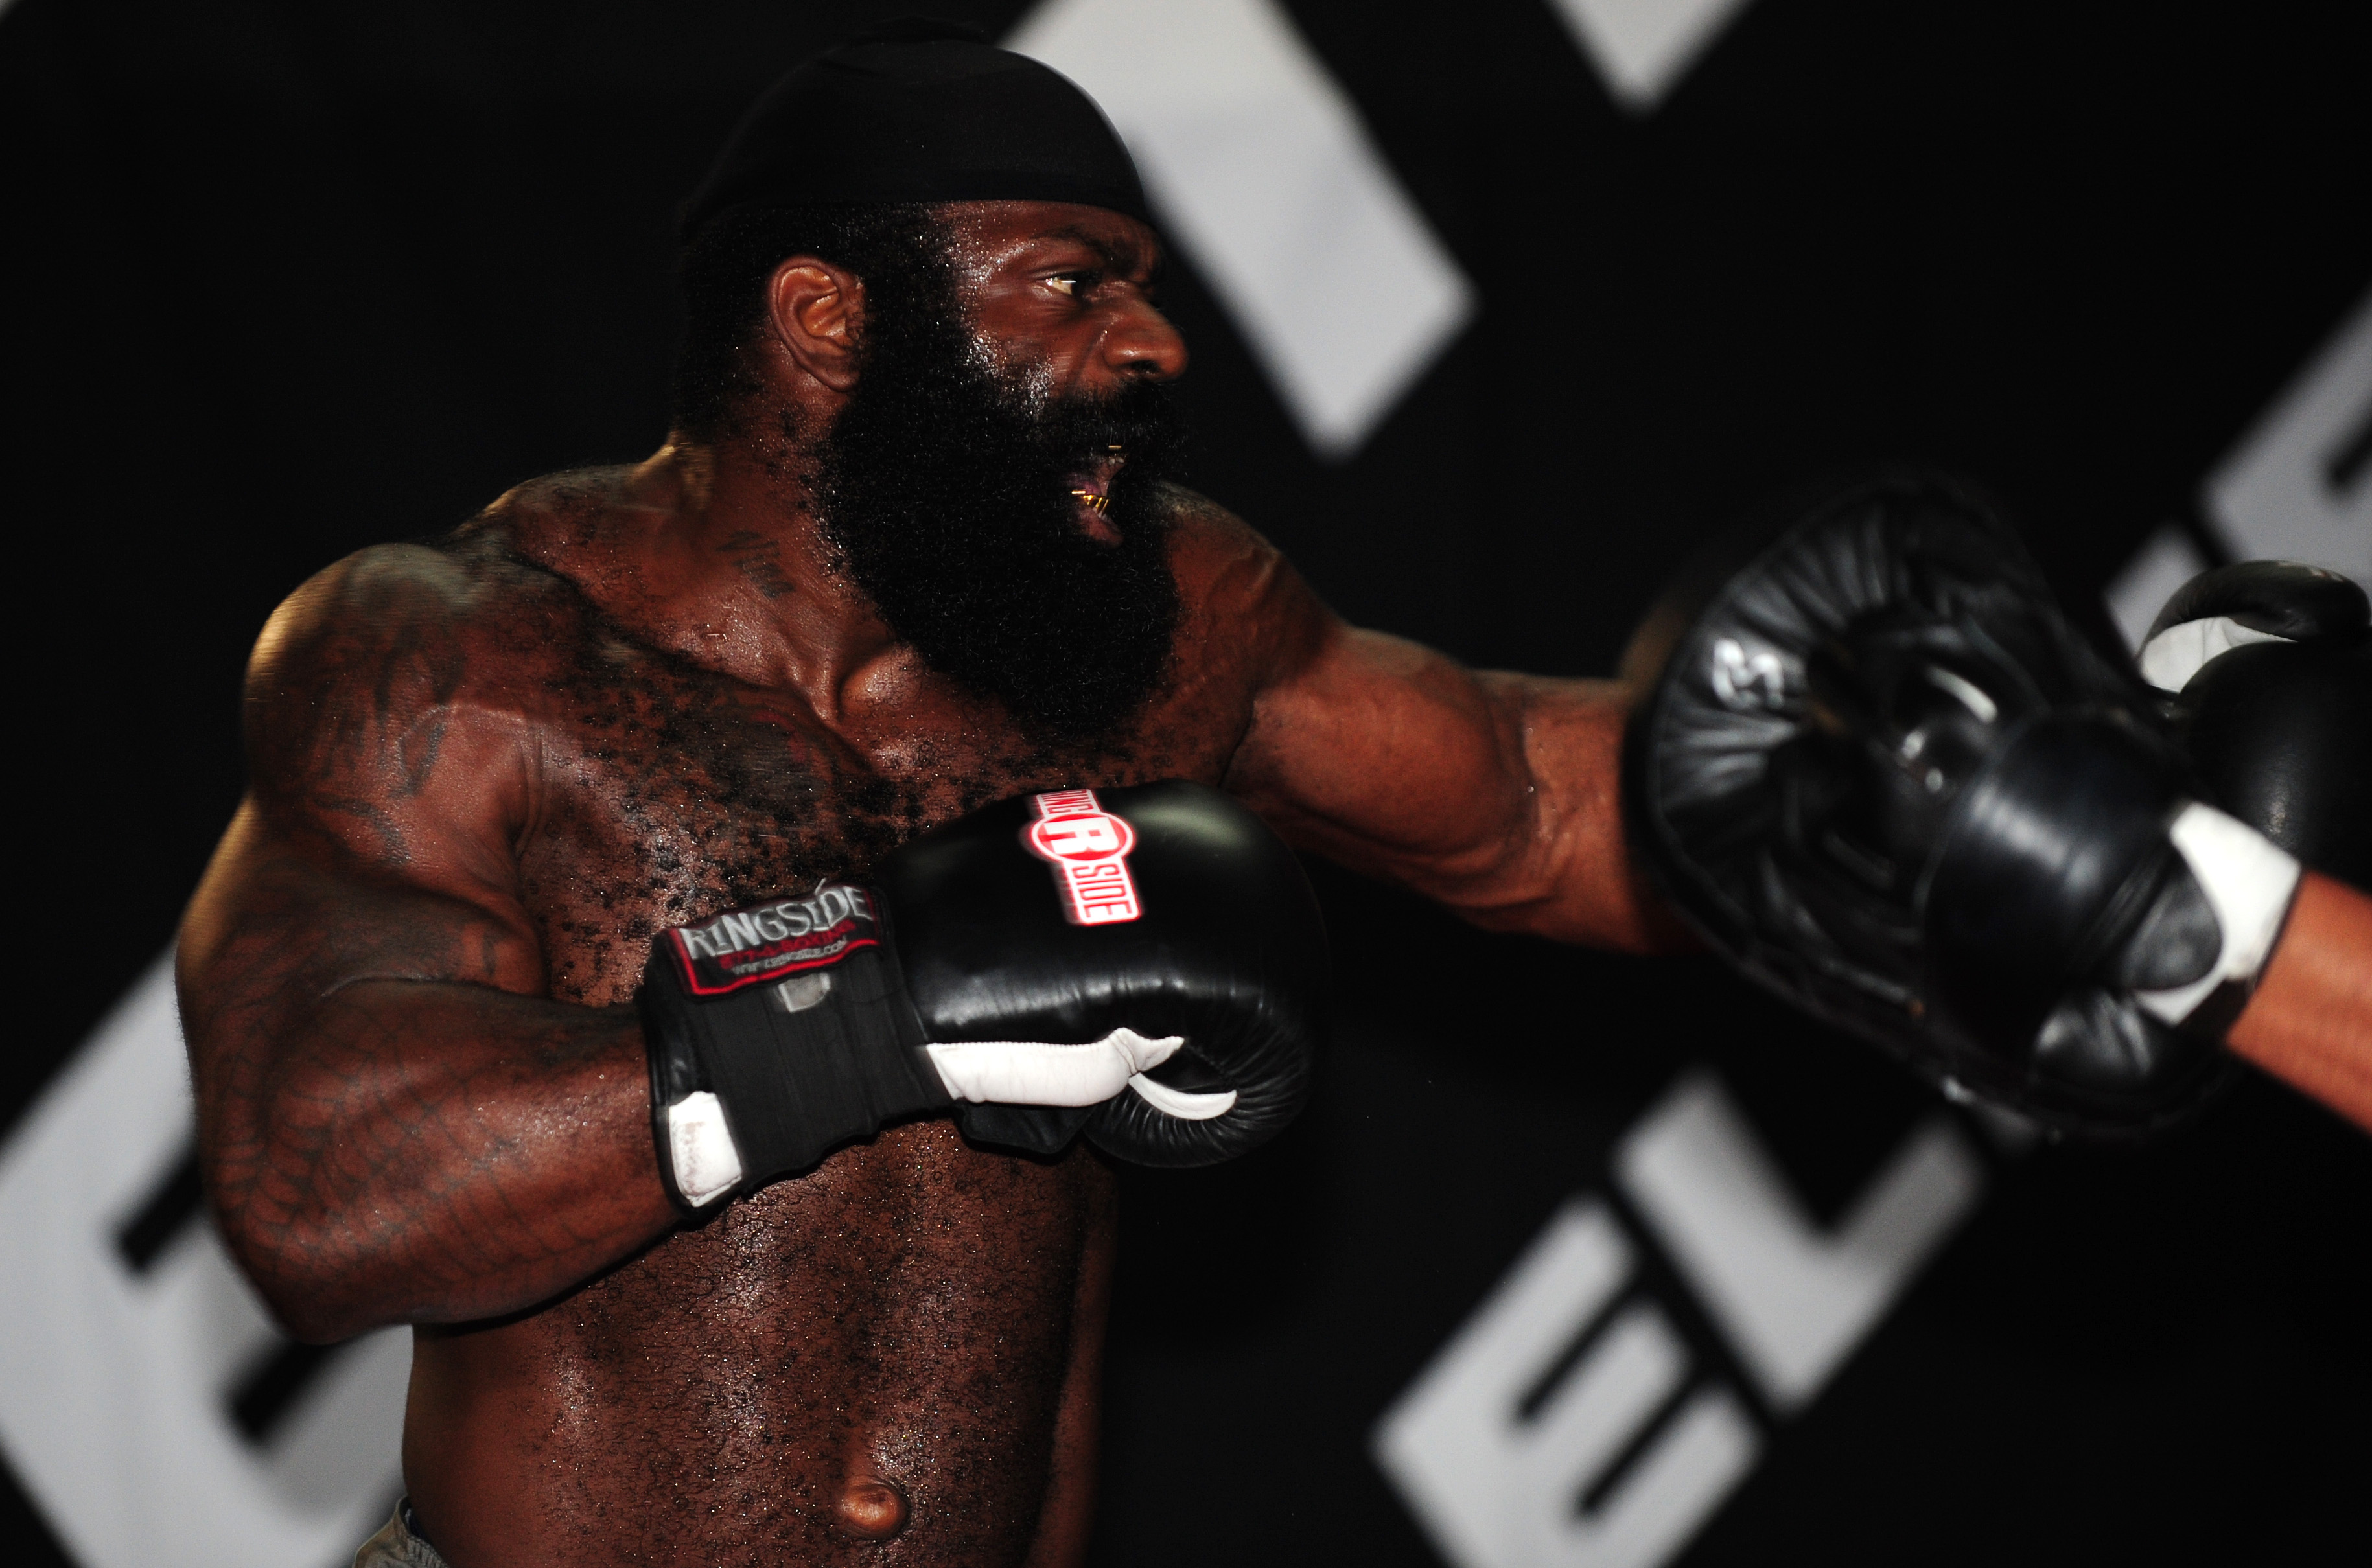 FILE - MMA Heavyweight Sensation Kimbo Slice is seen during the Workout/Media Day with Kimbo Slice and Gina Carano at the Legends Mixed Martial Arts Training Center on Sept. 17, 2008 in Los Angeles, California.